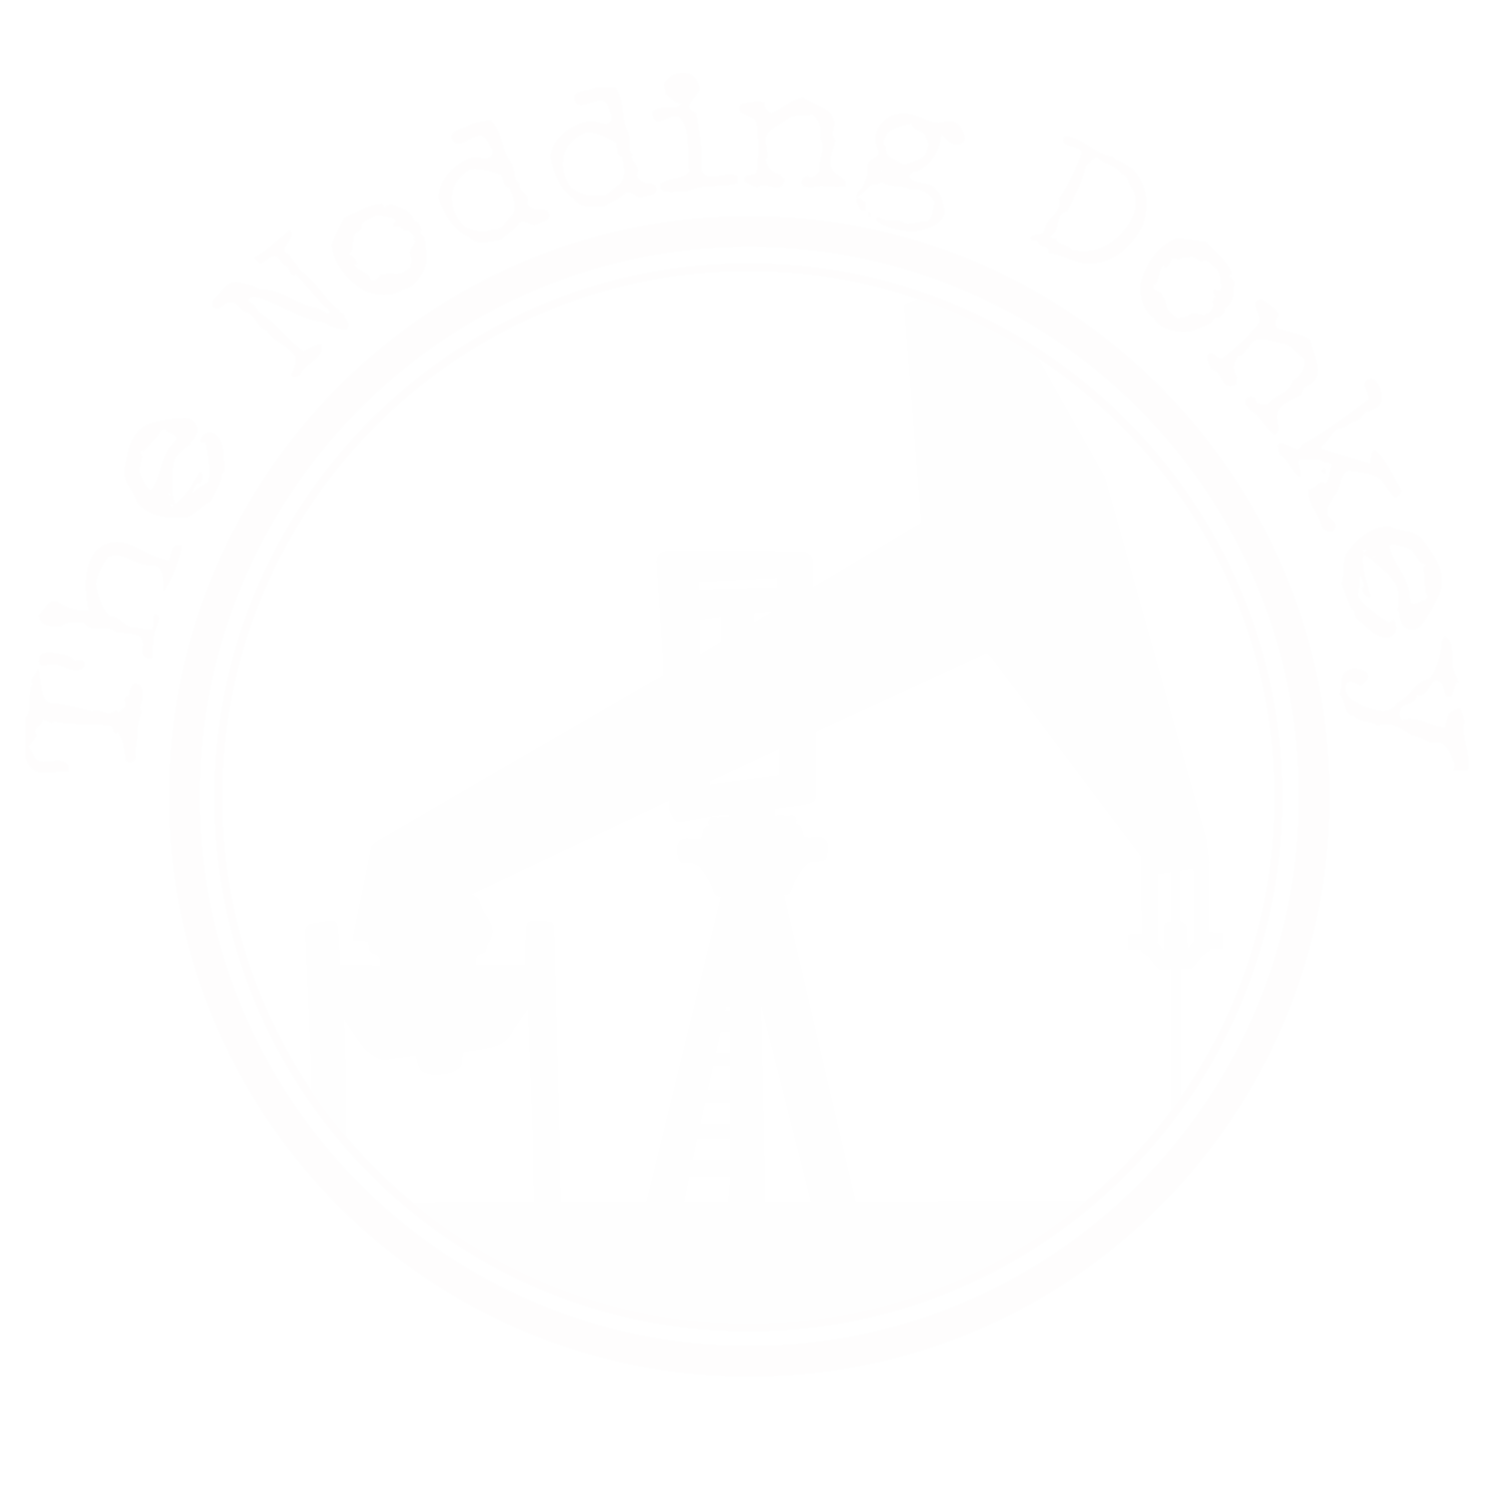 The Nodding Donkey